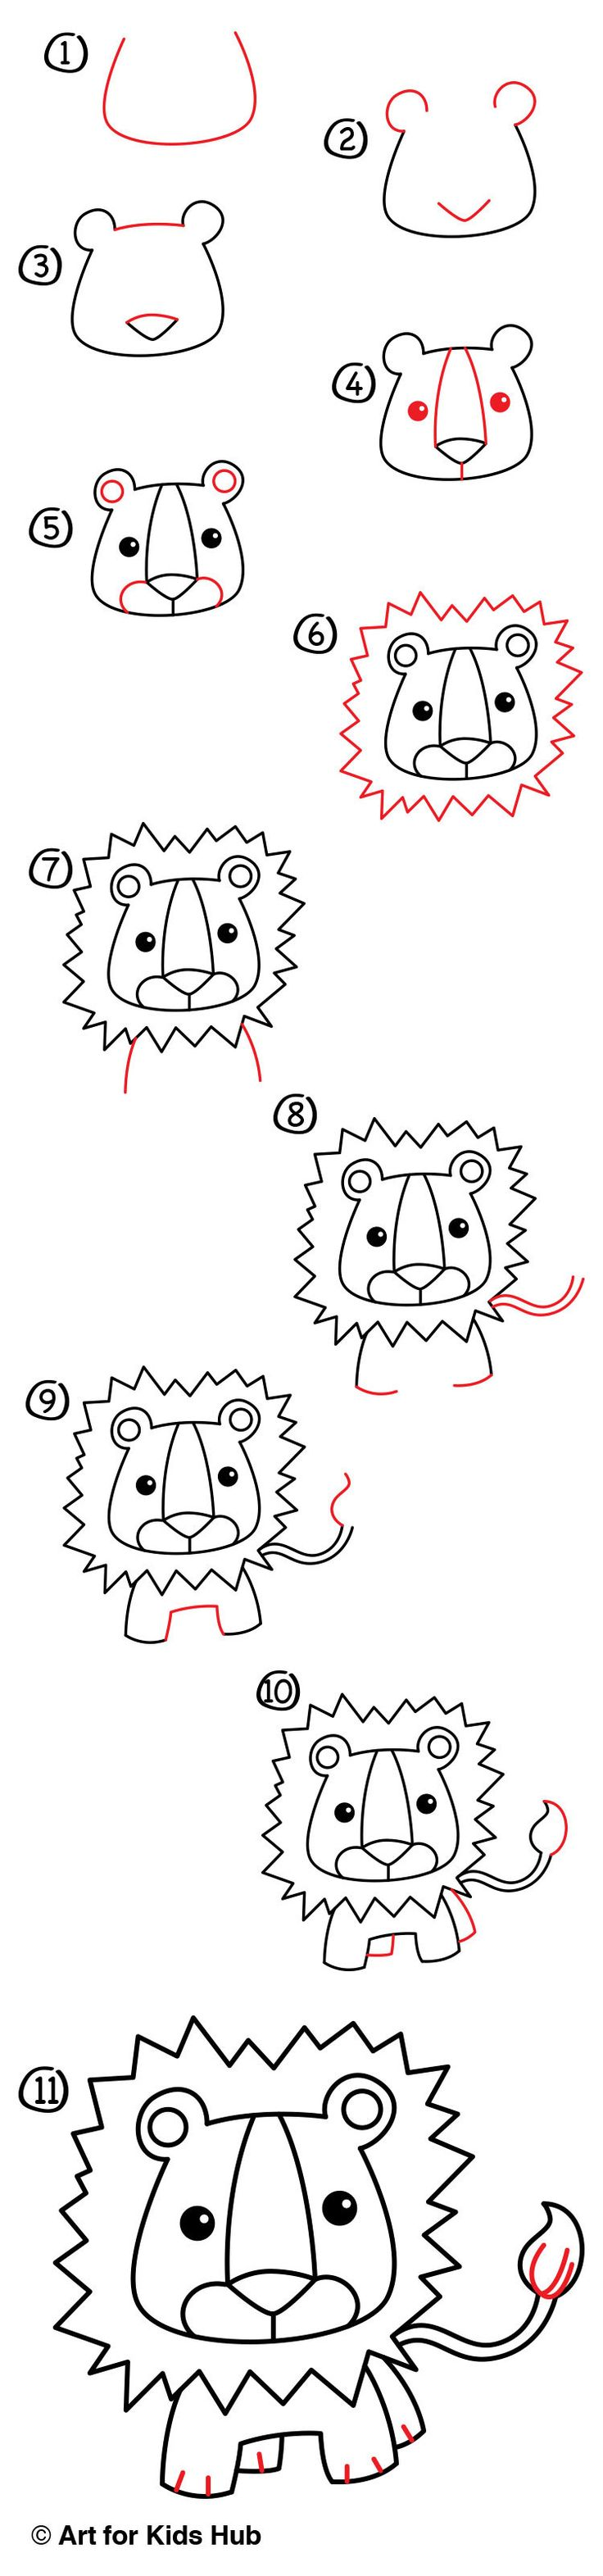 Follow Along With Us And Learn How To Draw A Cartoon Lion! This Lesson Is